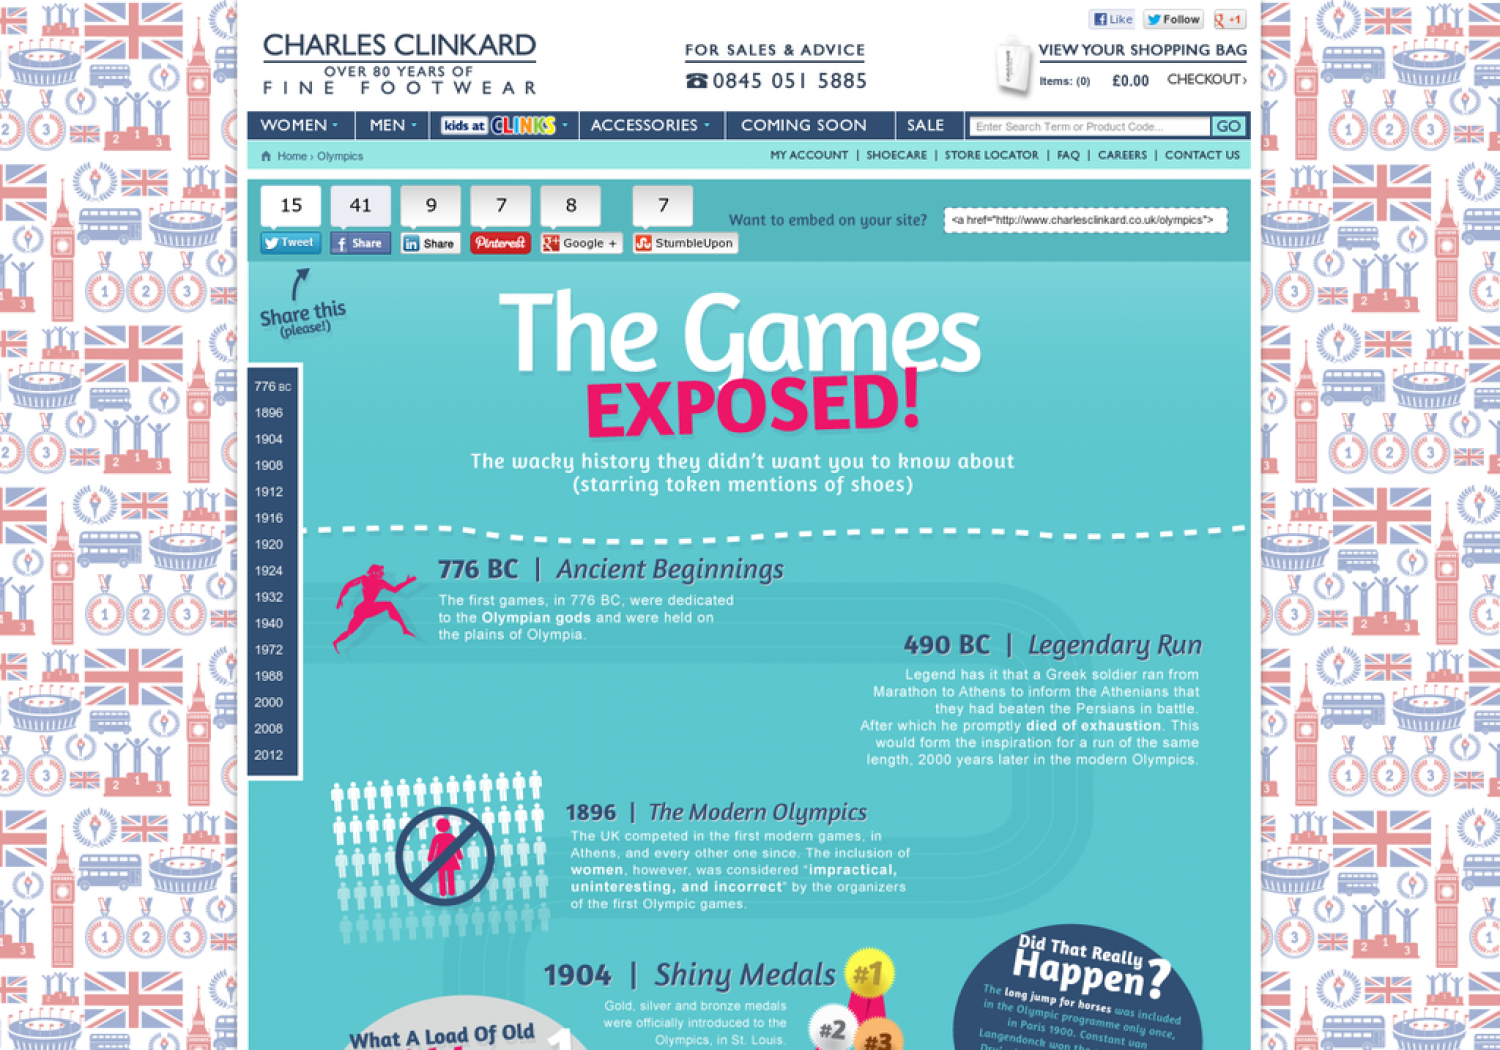 The Games EXPOSED! Infographic